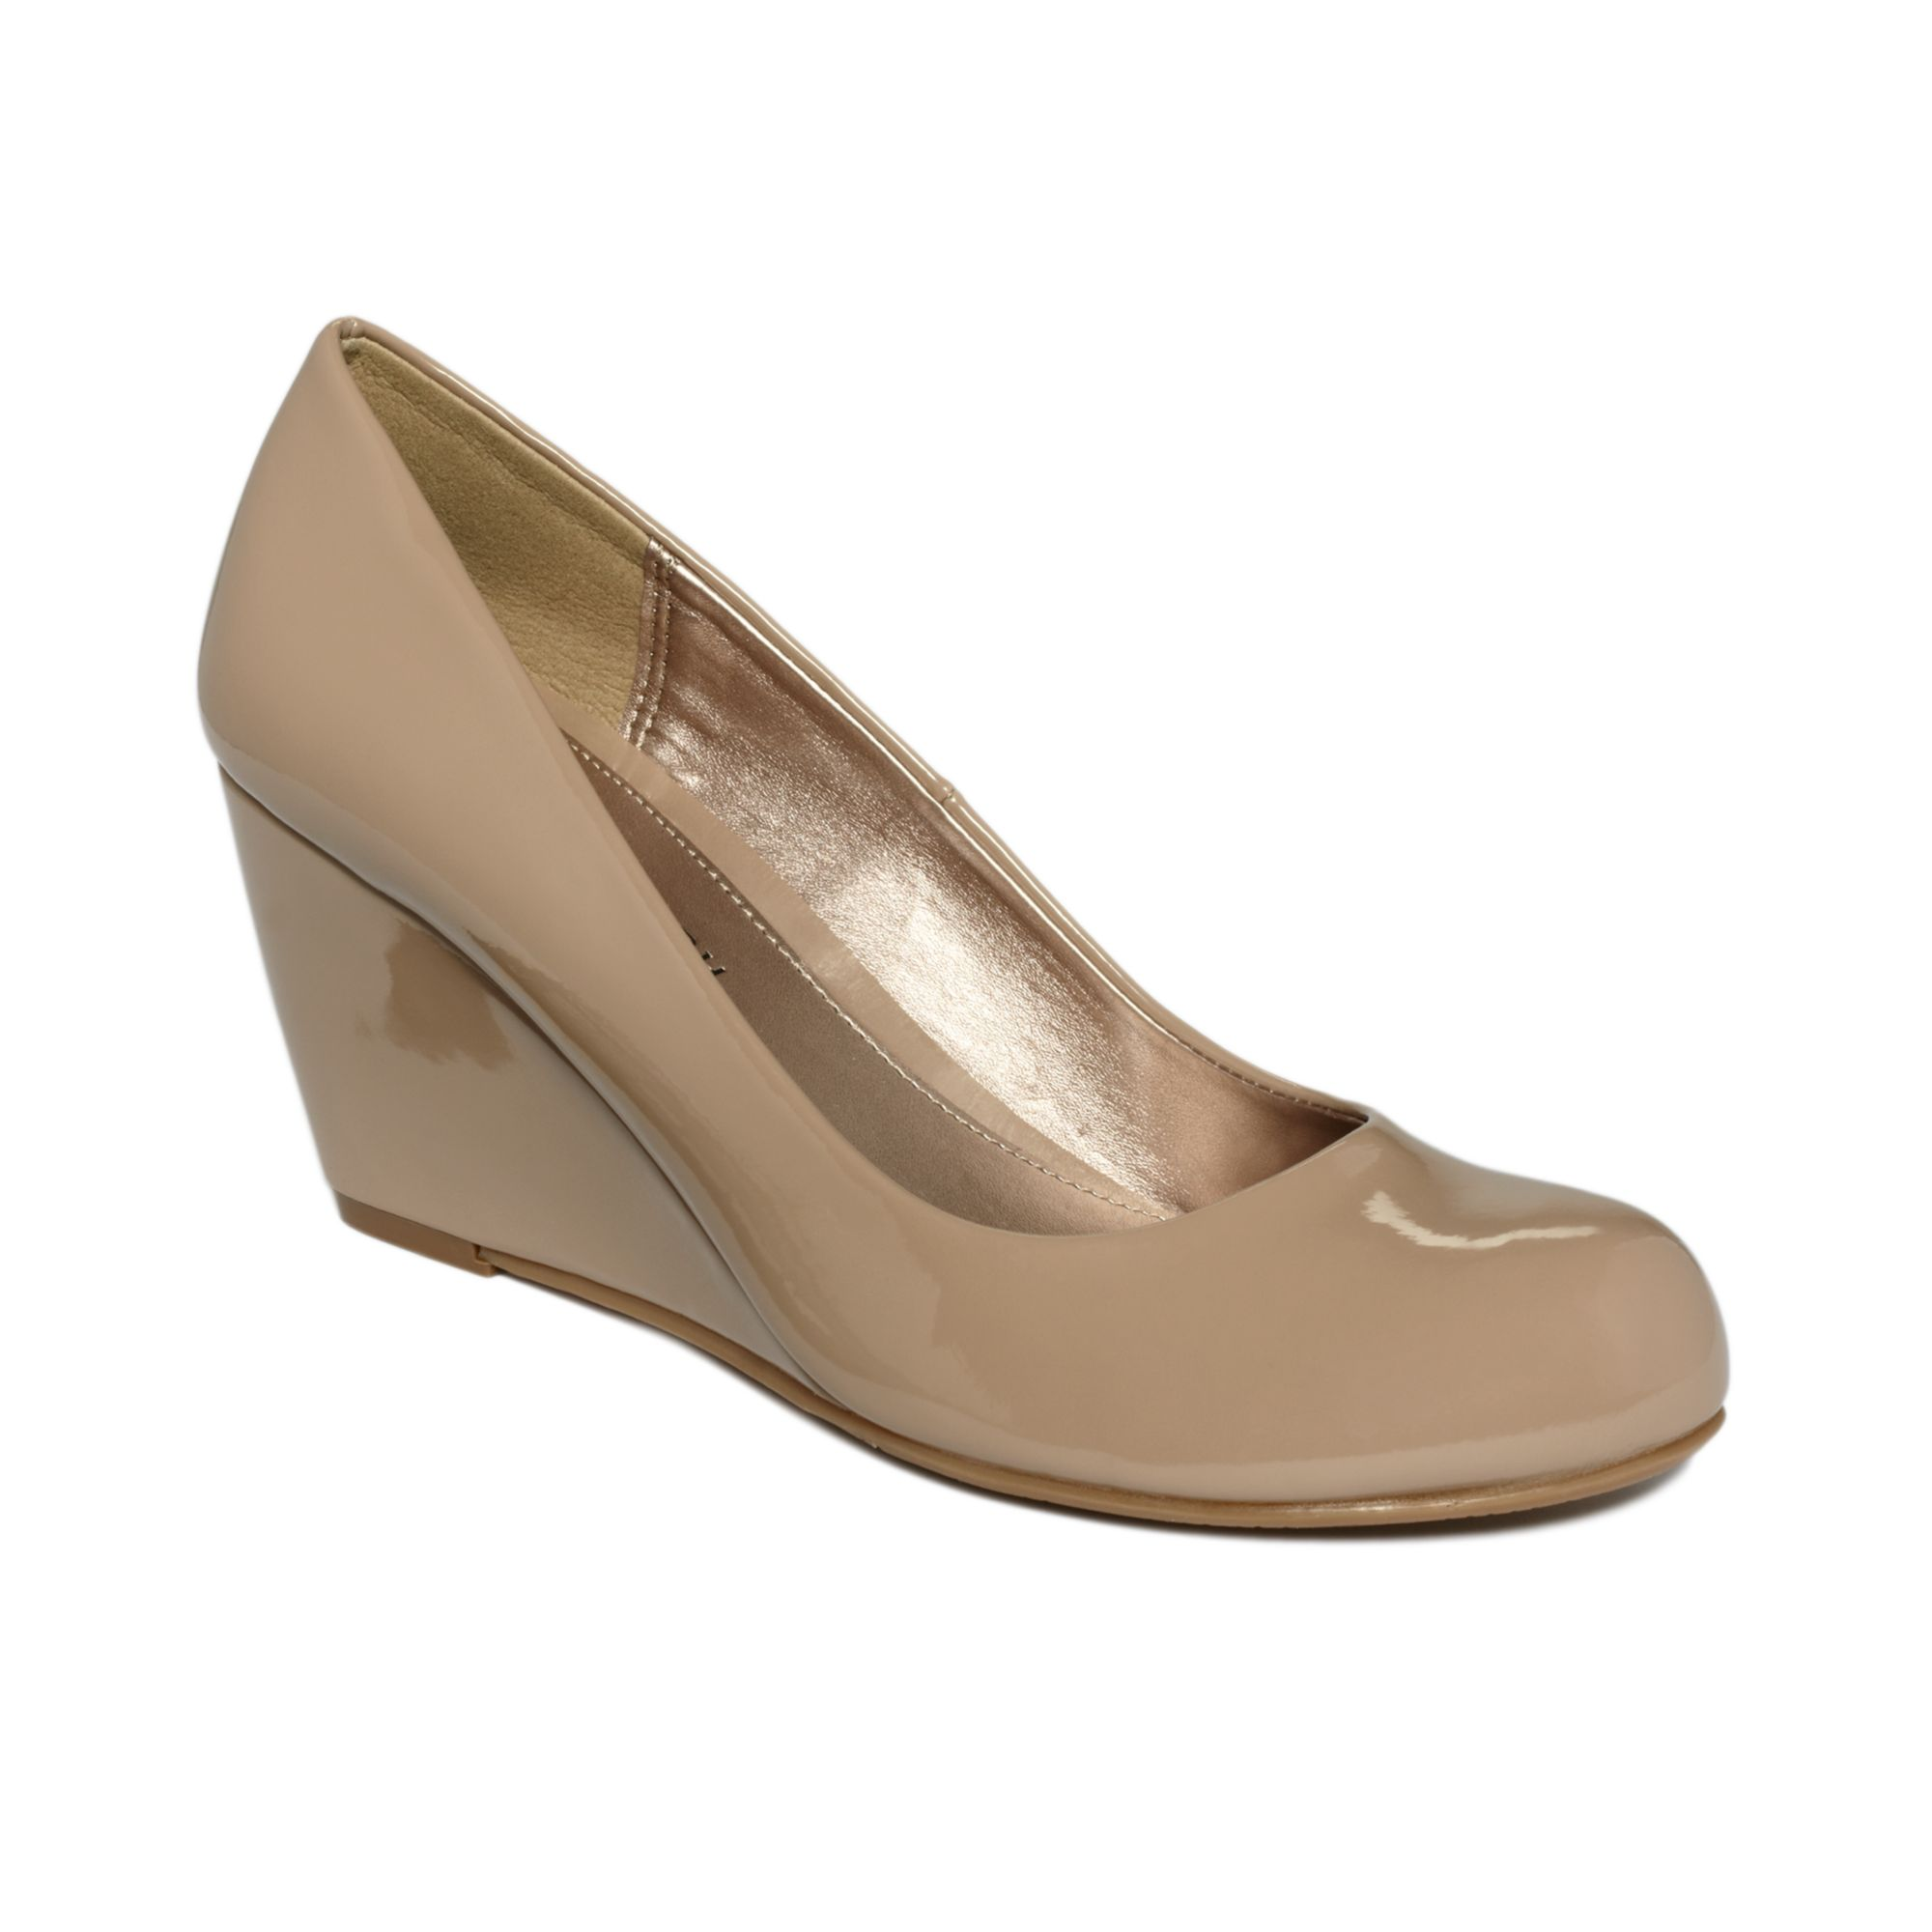 3d153cd9ff Lyst - Chinese Laundry Cl By Laundry Shoes Nima Wedges in Natural